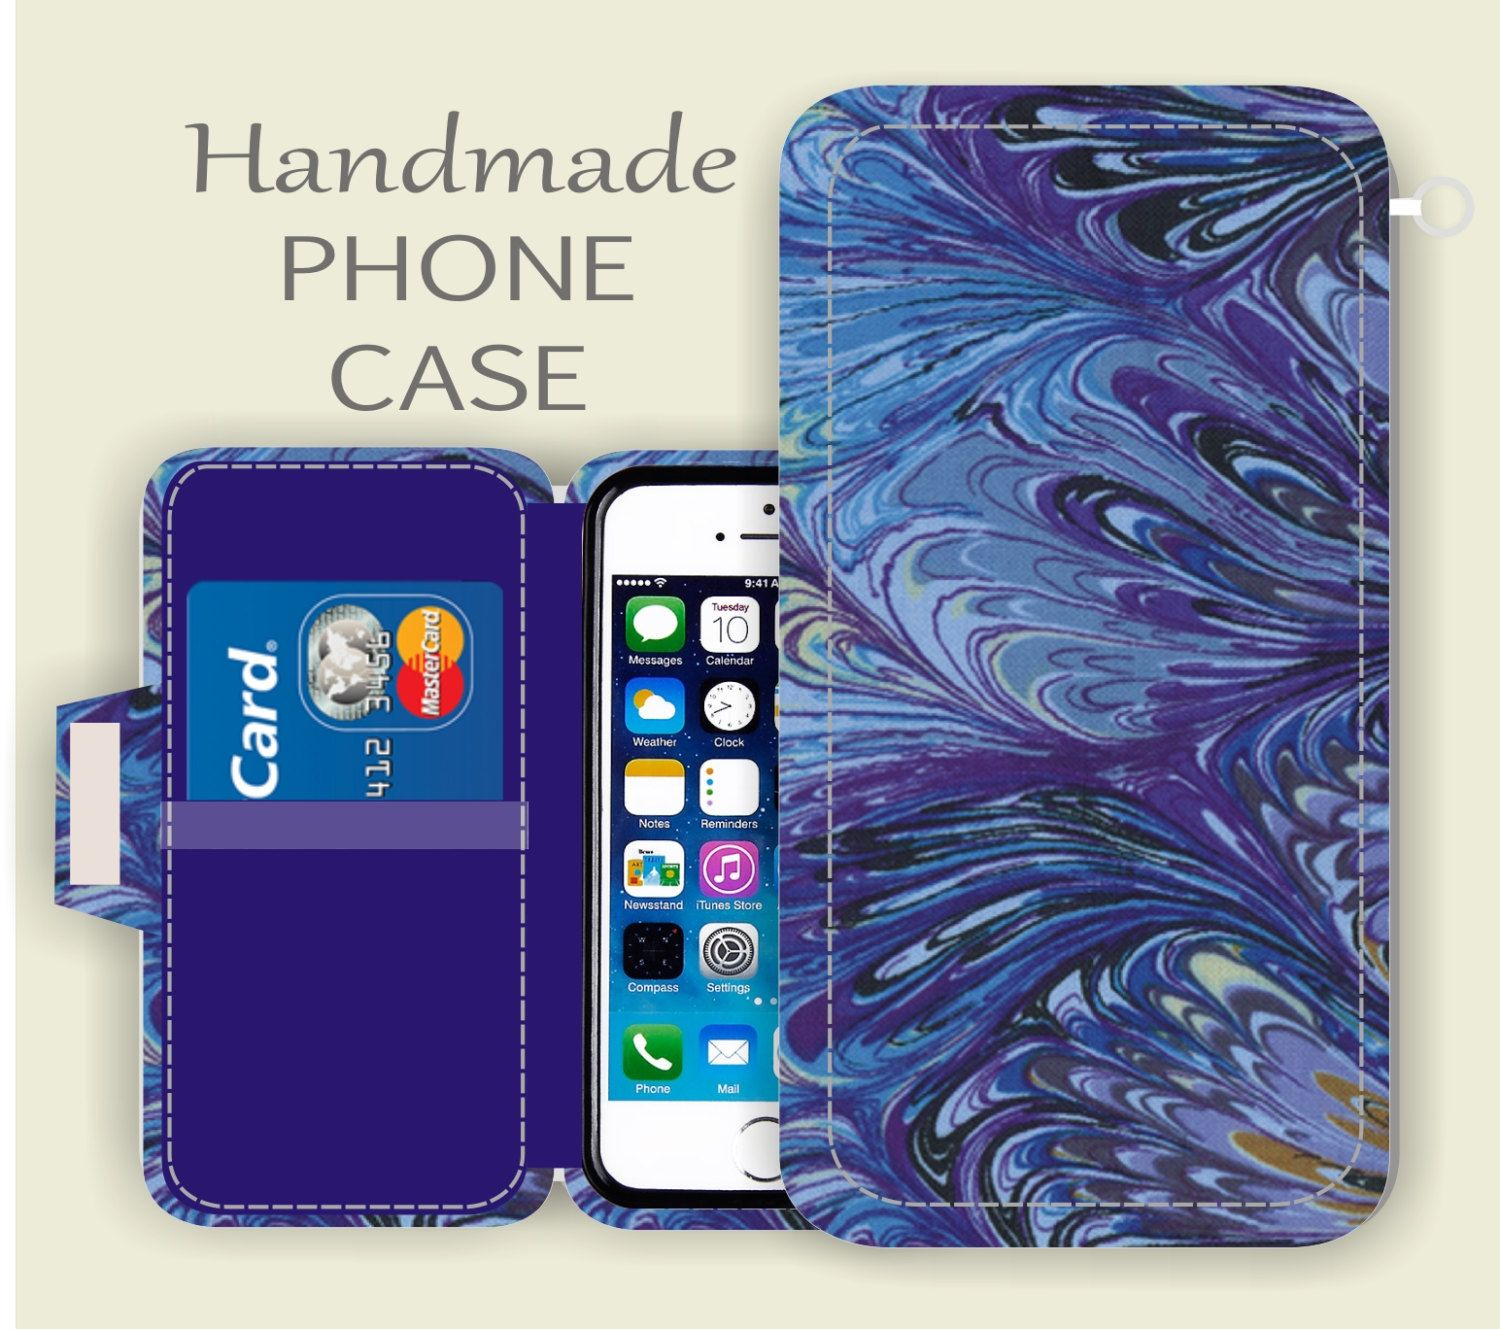 Royal Blue galaxy s6 edge plus Phone Case iPhone 6 Plus iPhone 6 S3 iPhone 6 Samsung Galaxy S5 Samsung Galaxy S6 by superpowerscases on Etsy